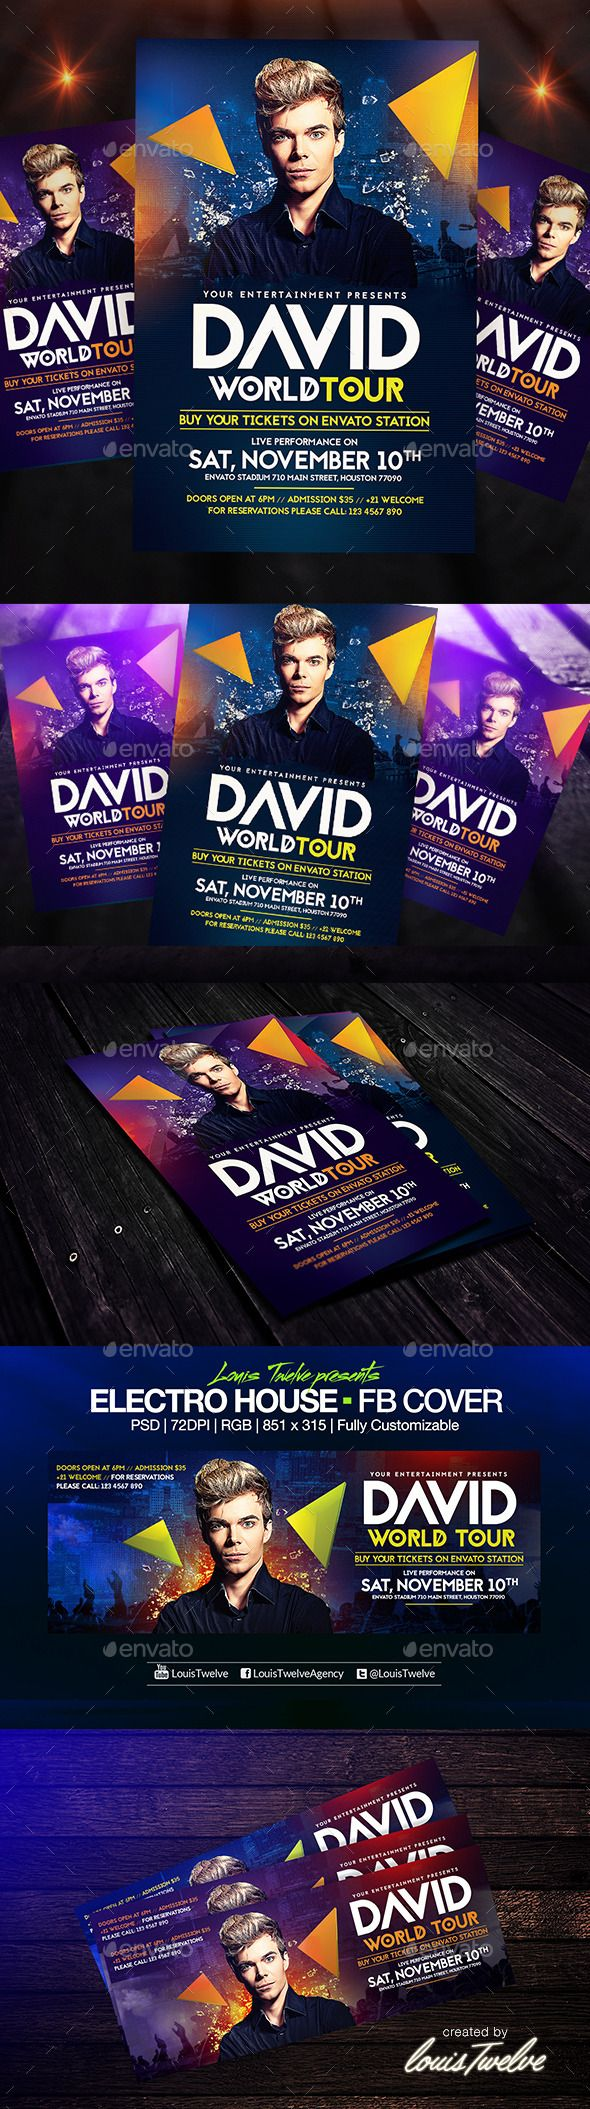 best images about flyers template saturday night electro house flyer template fb cover